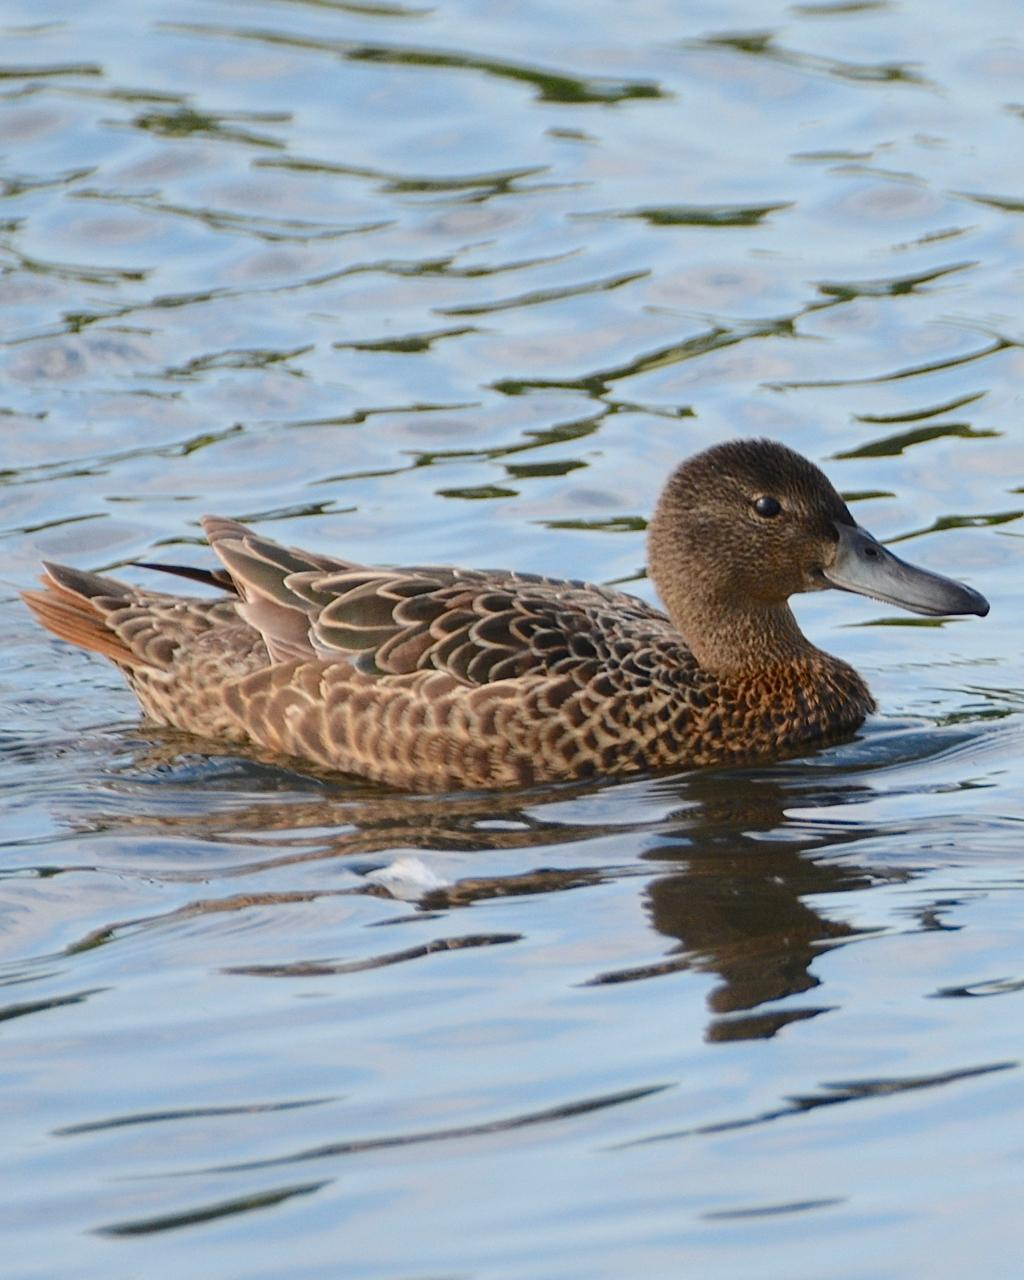 Cinnamon Teal Photo by Brian Avent